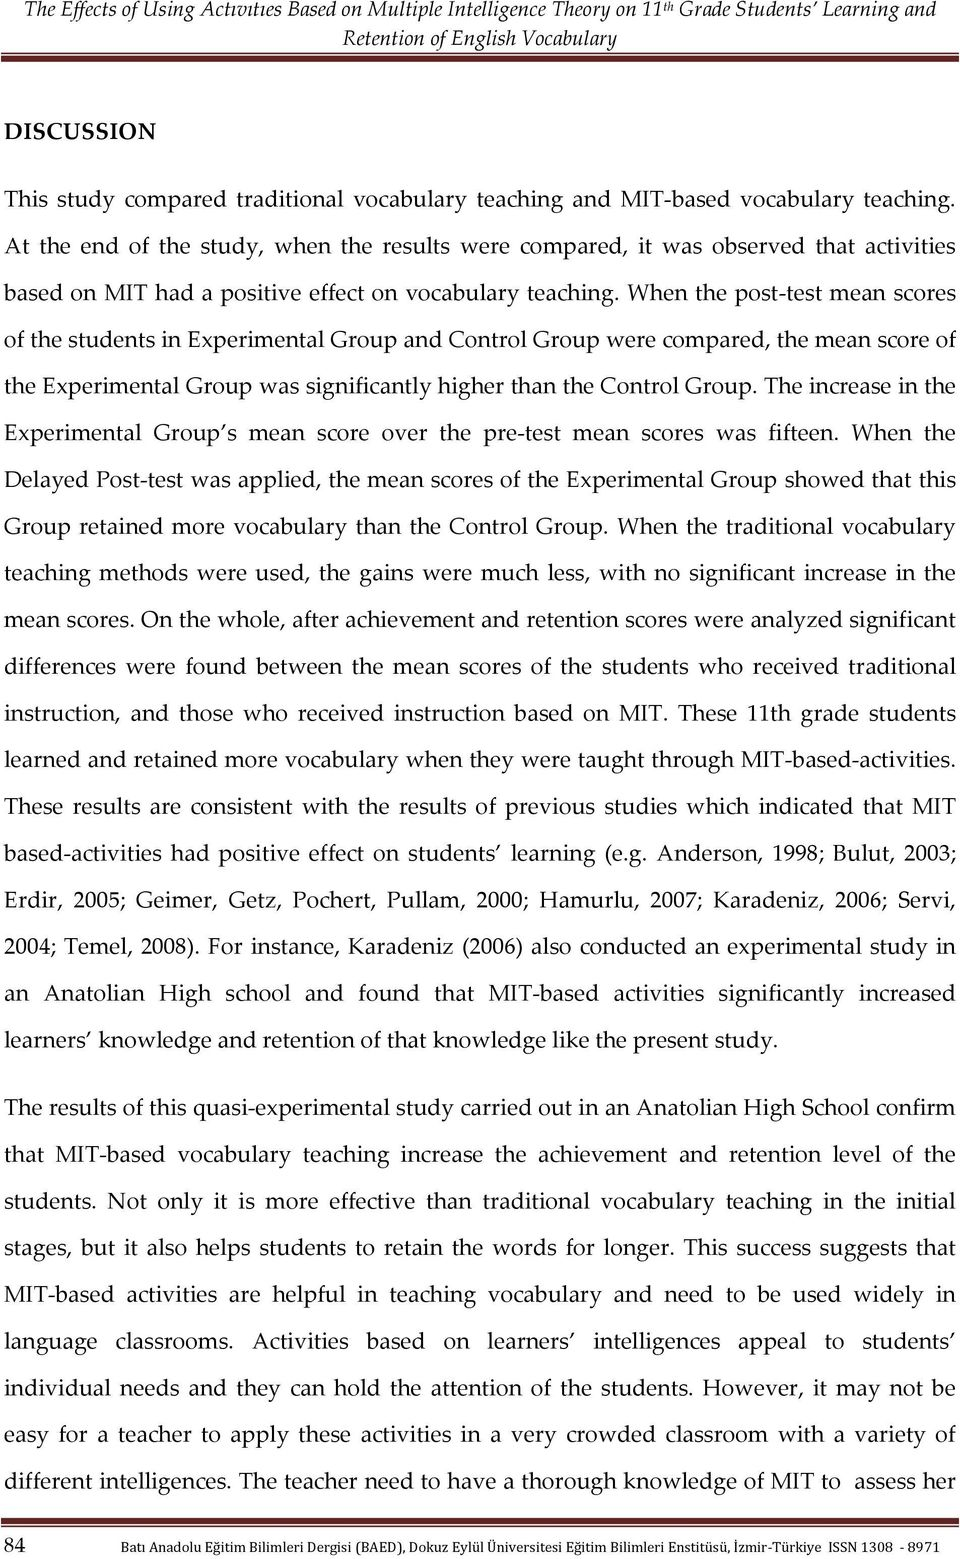 When the post- test mean scores of the students in Experimental Group and Control Group were compared, the mean score of the Experimental Group was significantly higher than the Control Group.